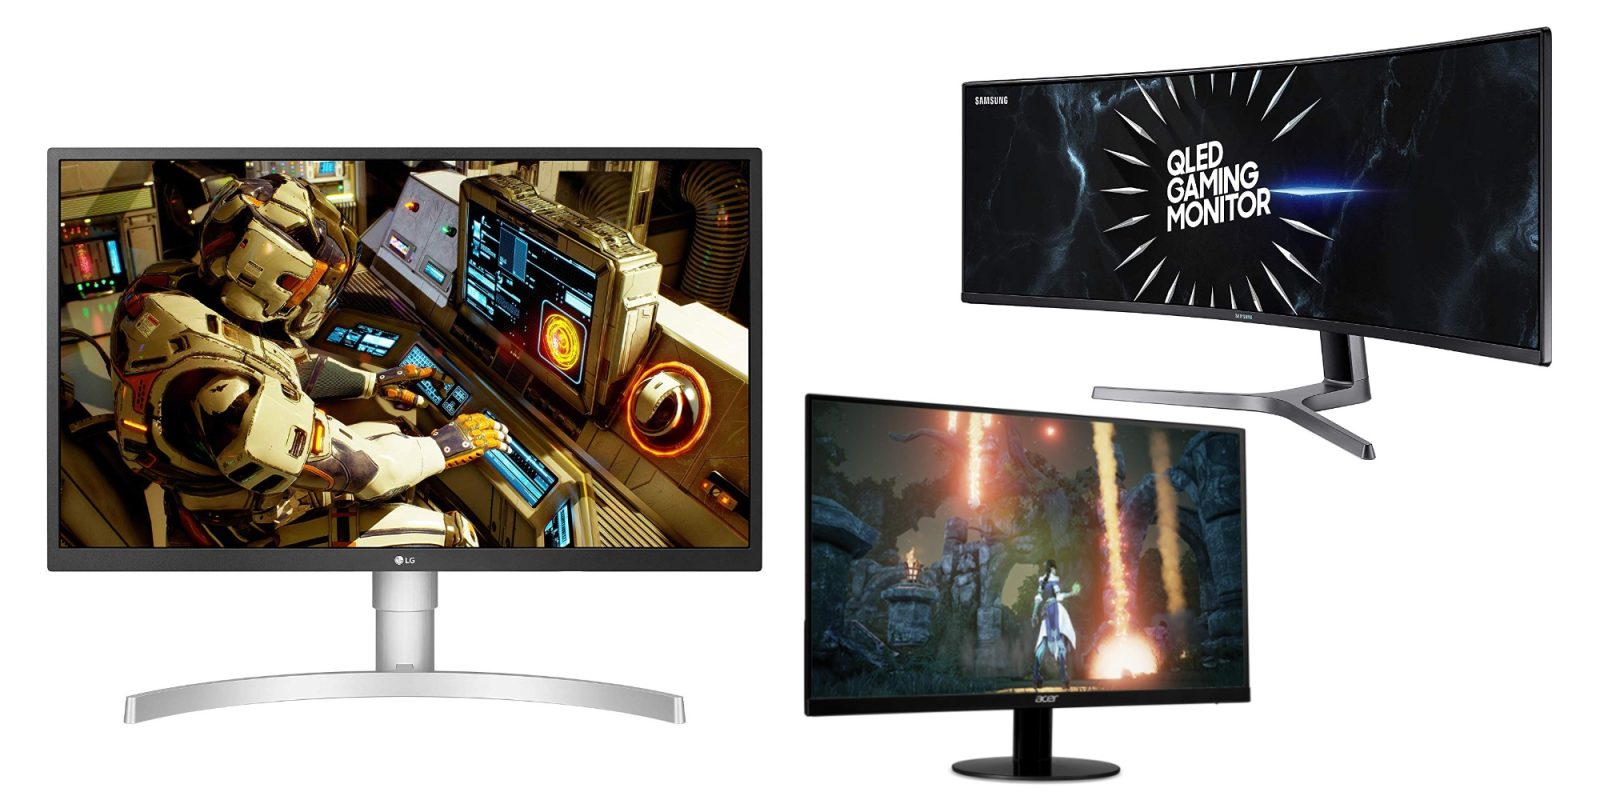 LG 4K Monitor deal offers a $100 disocunt + a new all-time